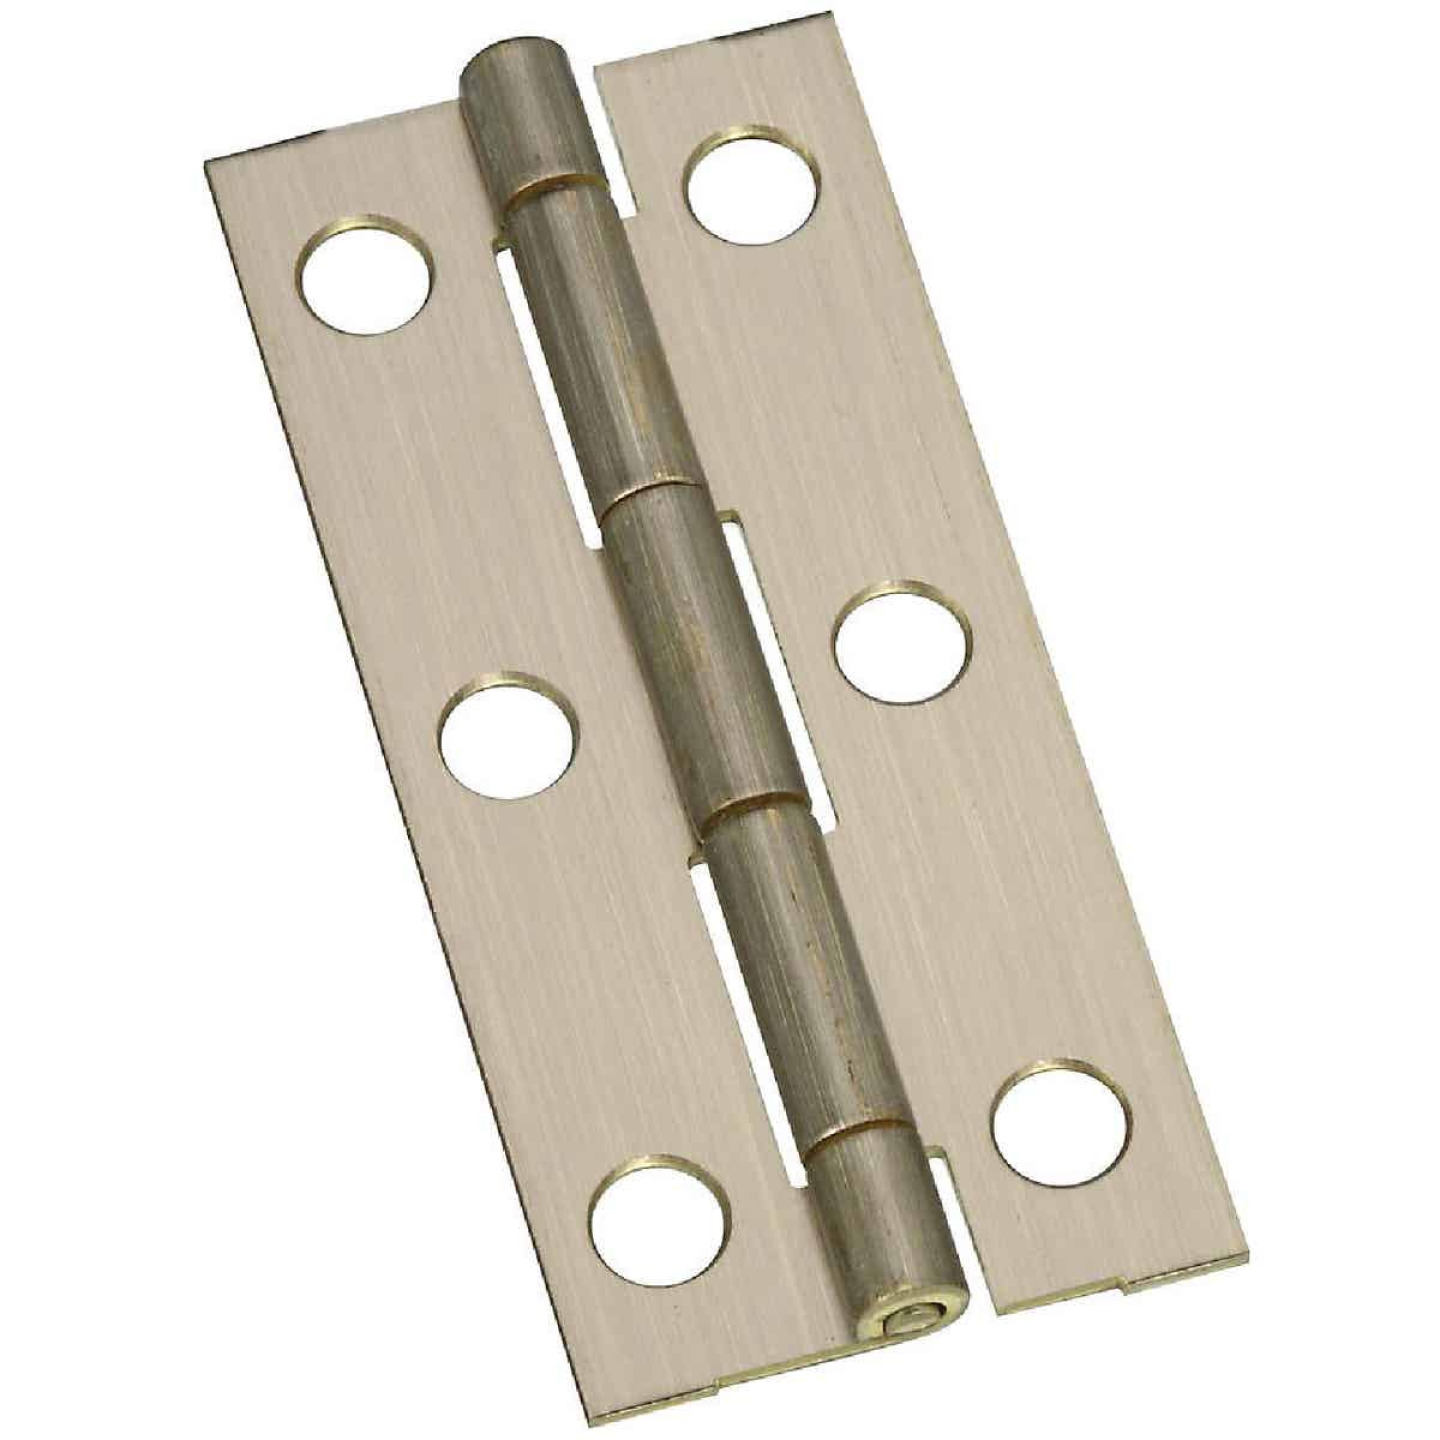 National 1-1/8 In. x 2-1/2 In. Antique Brass Narrow Decorative Hinge (2-Pack) Image 1